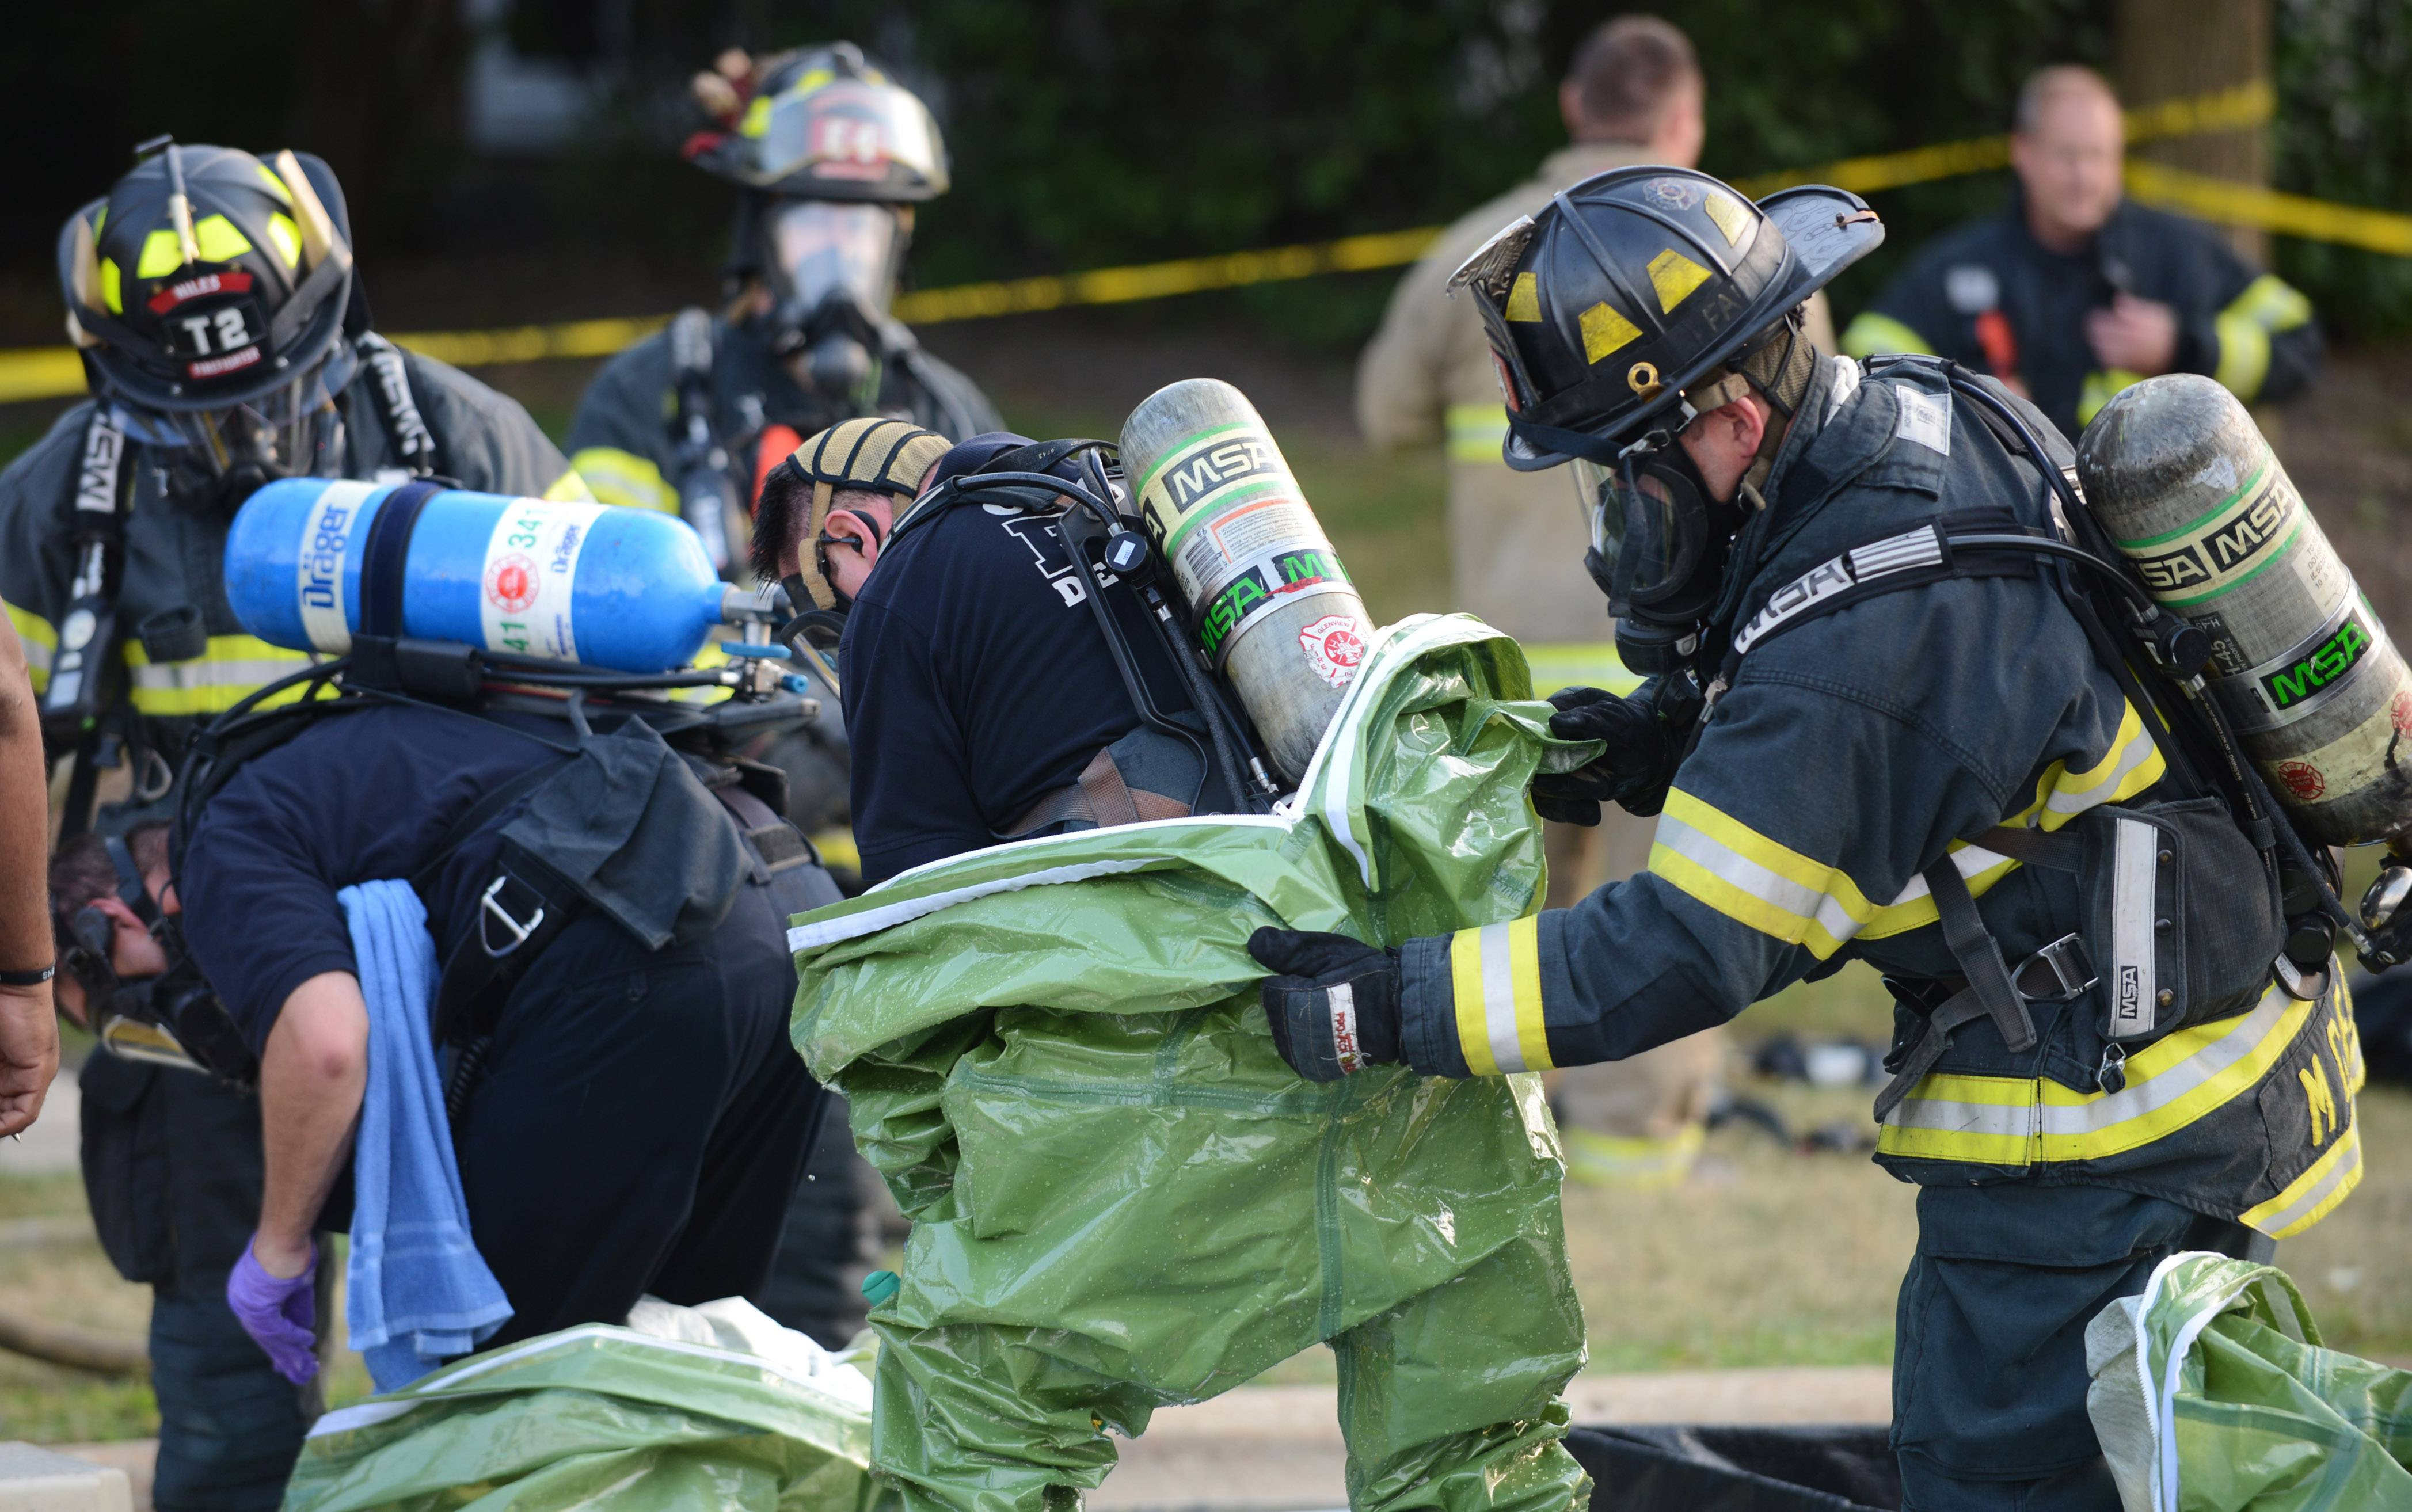 Firefighters remove their protective suits after responding to a hazardous materials situation on the 9400 block of Harrison Street Thursday in an unincorporated area near Des Plaines. Two men were found dead in the home, and a woman living there was listed in critical condition late Thursday.